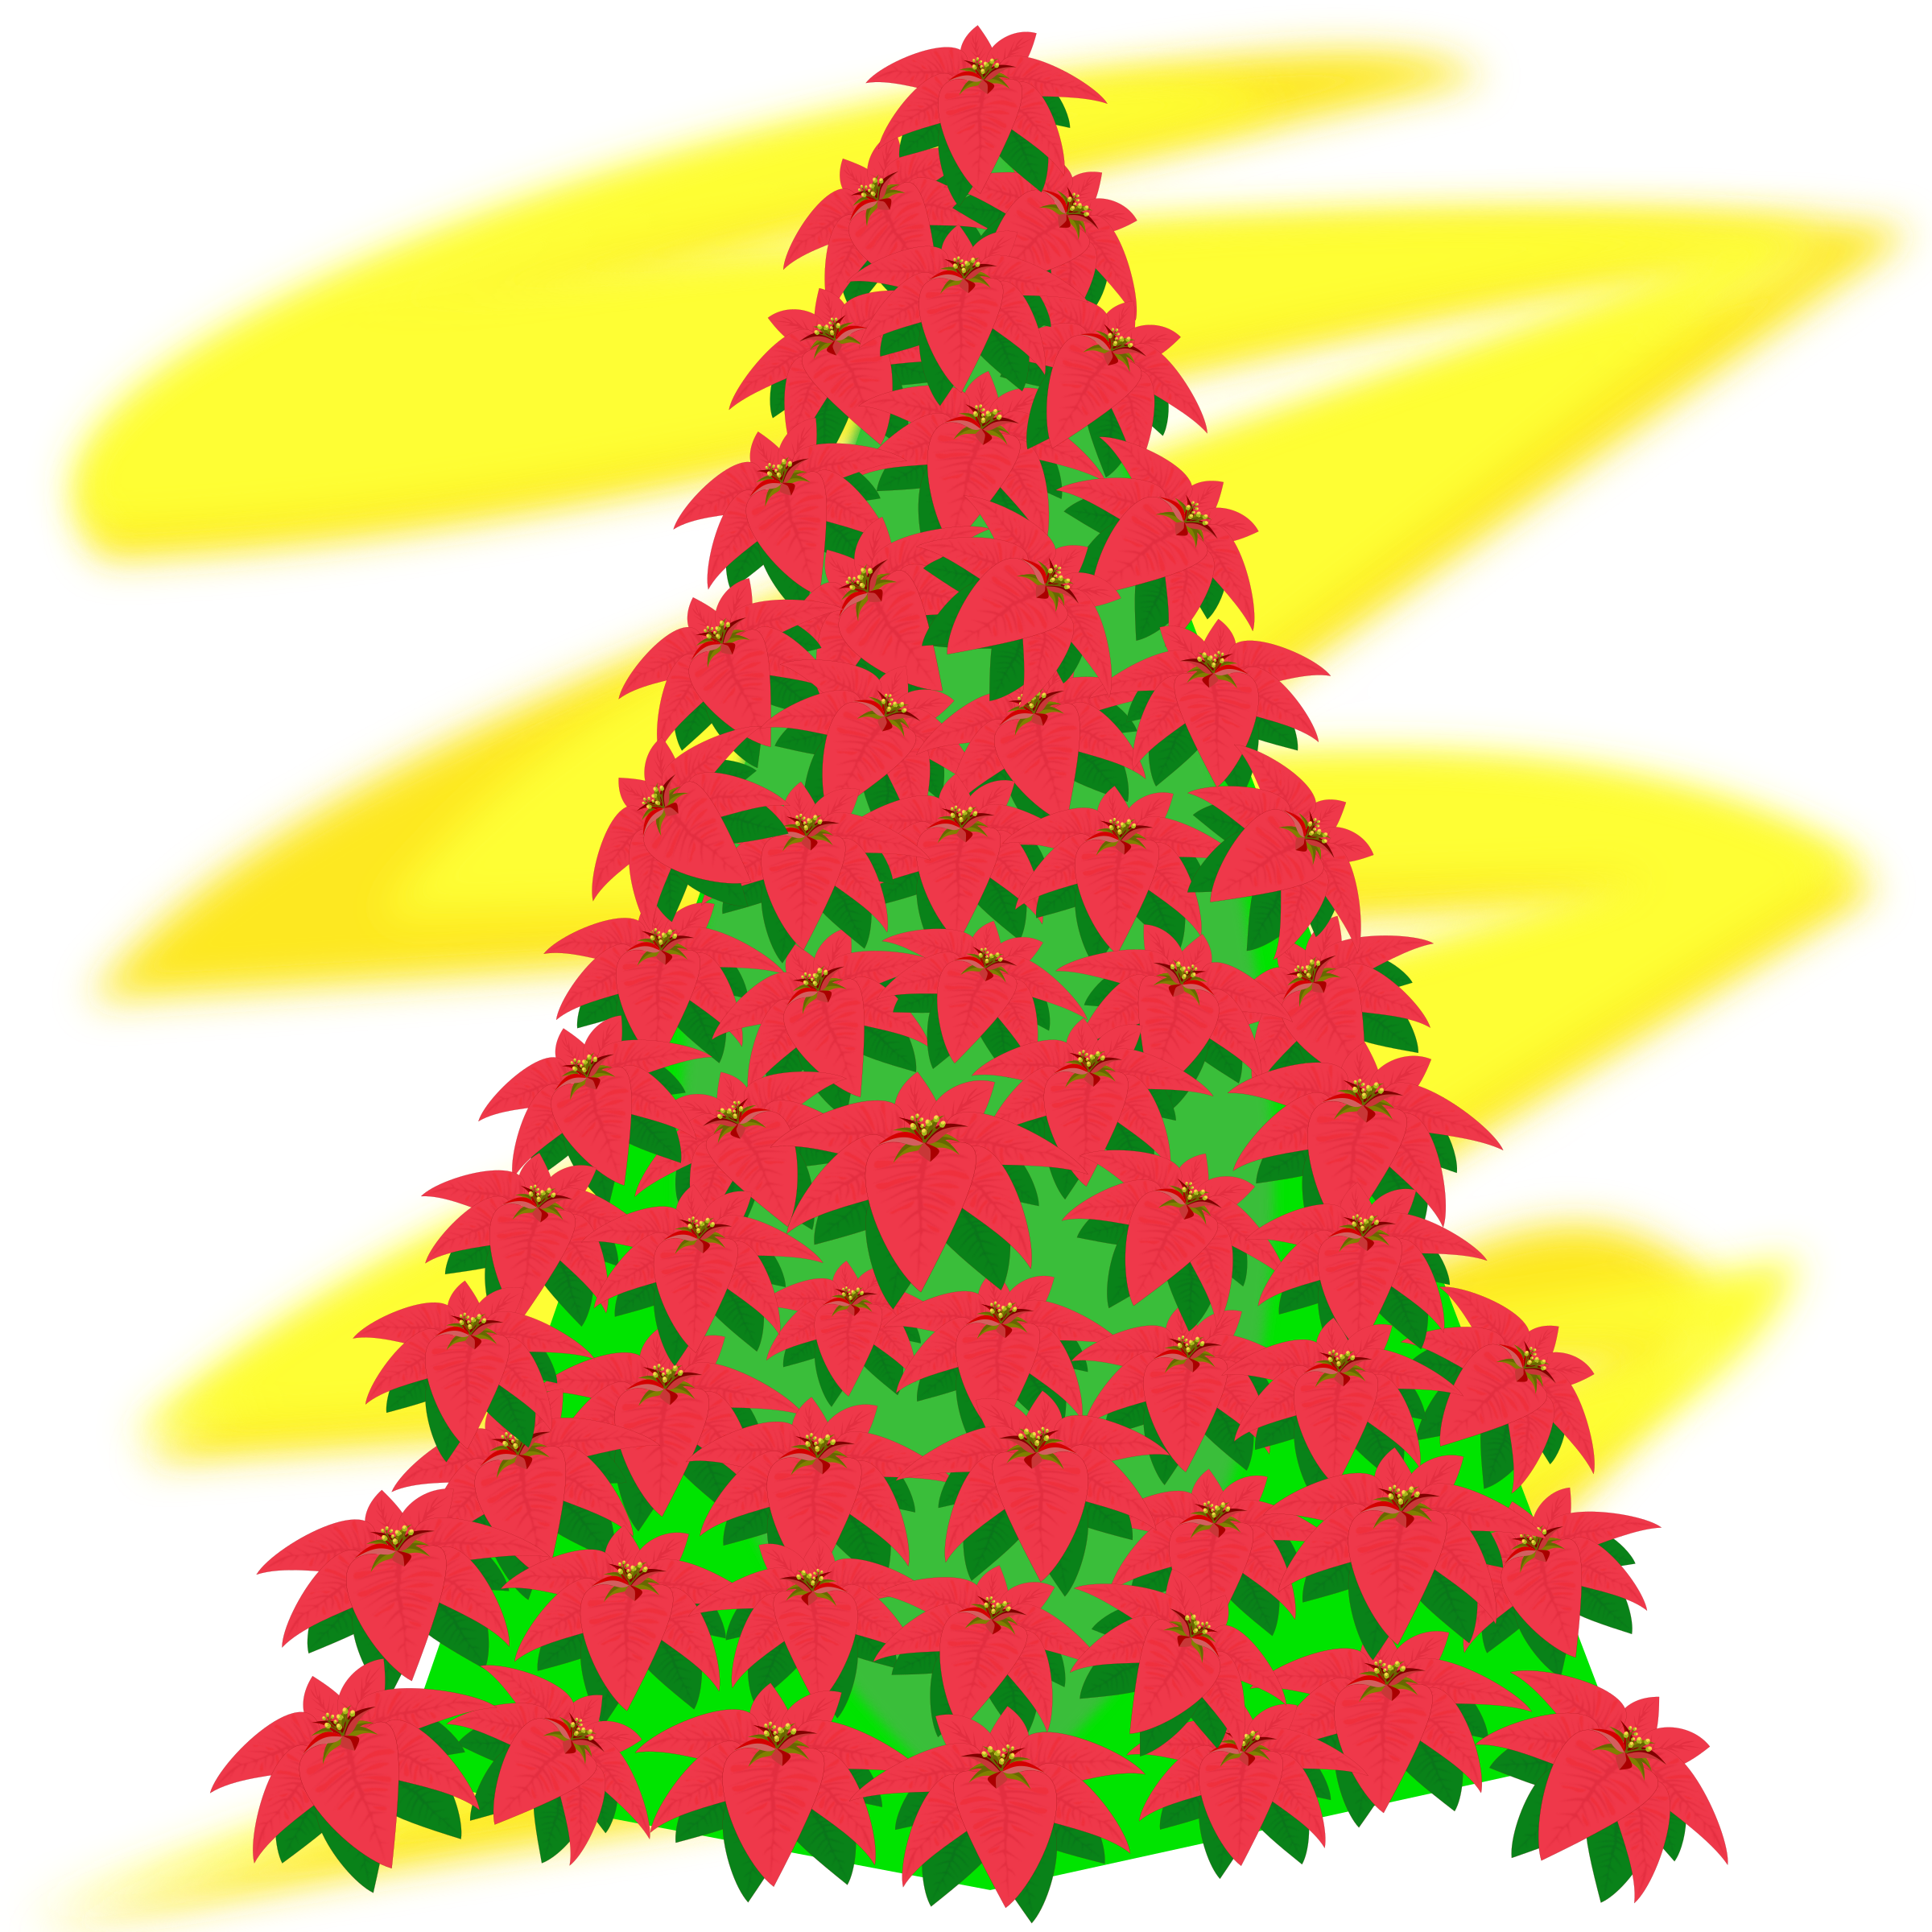 2400x2400 Free Christmas Tree Clipart Red Silhouette